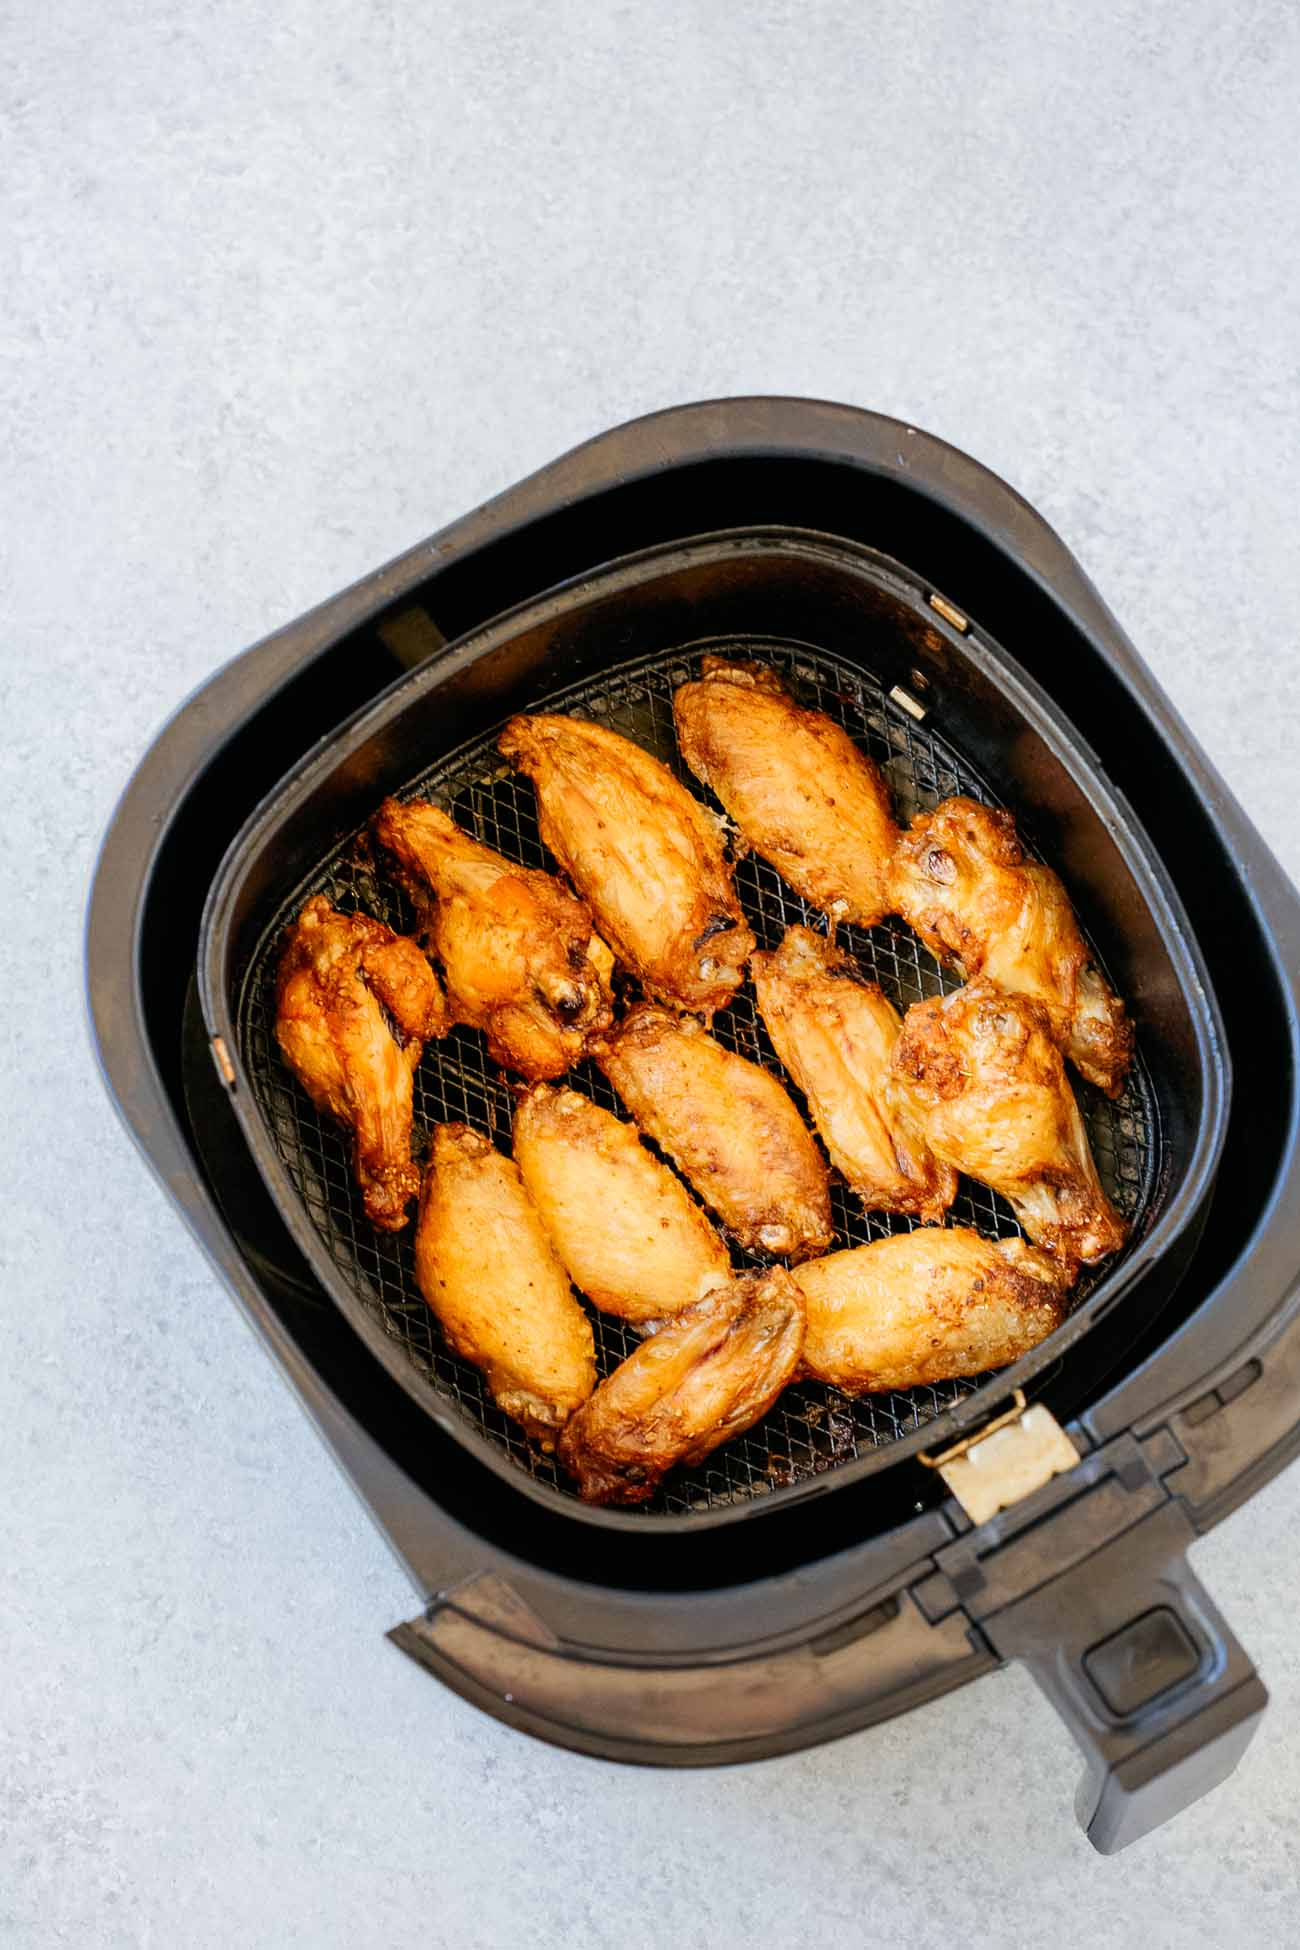 Air fryer basket with chicken wings.